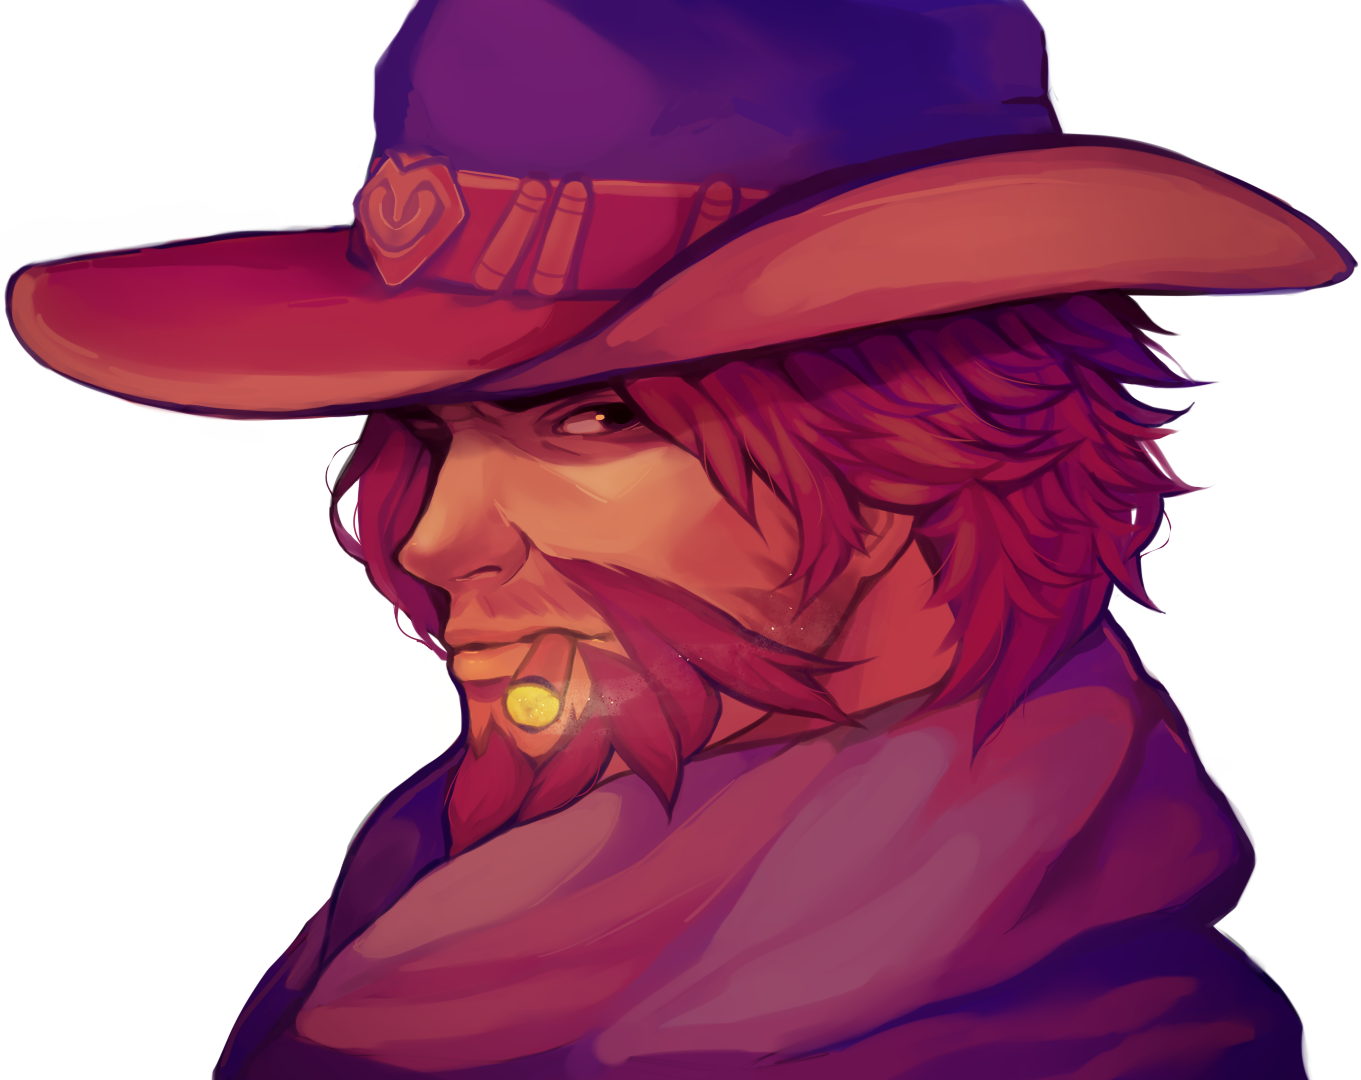 Portrait pinterest. Mccree overwatch png